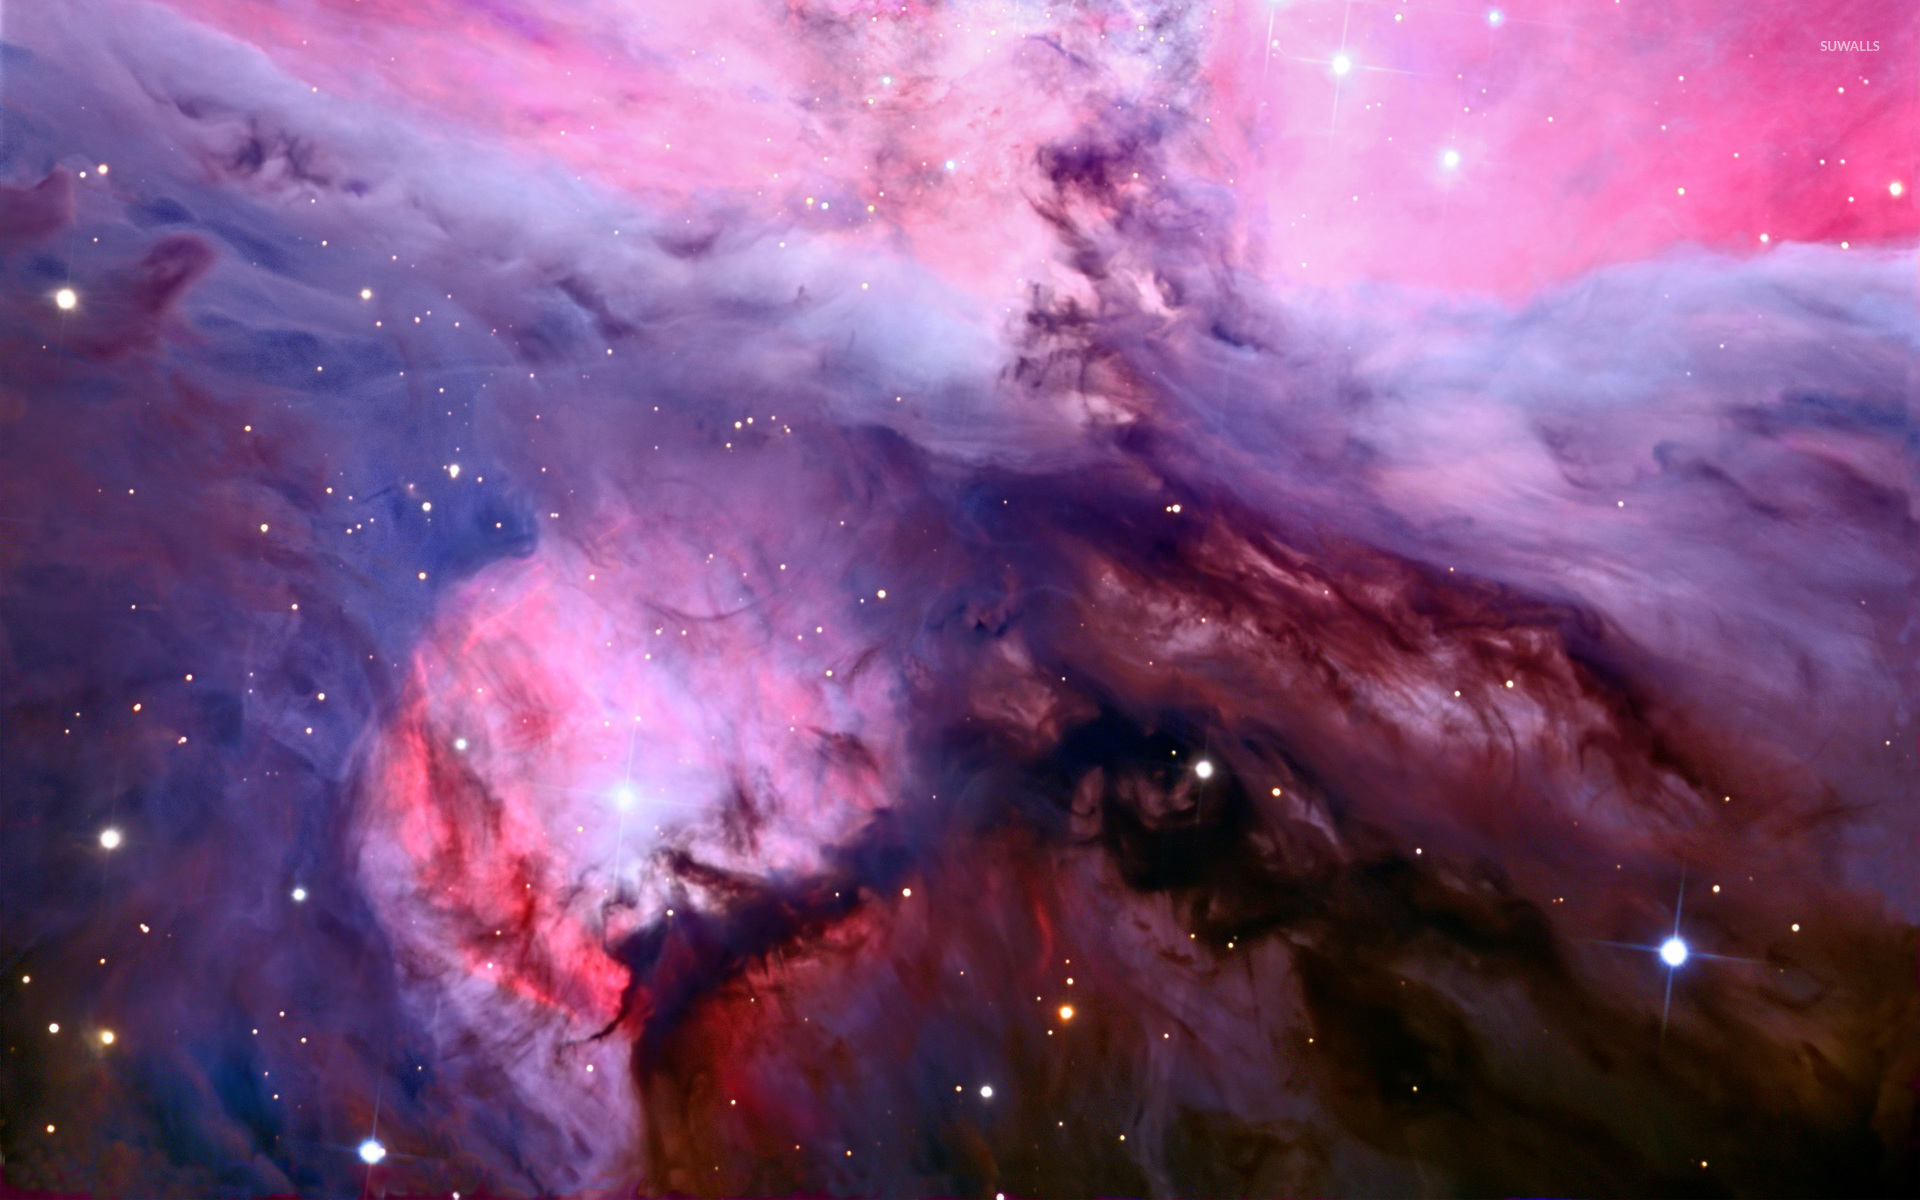 Orion Nebula wallpaper   Space wallpapers   9212 1920x1200